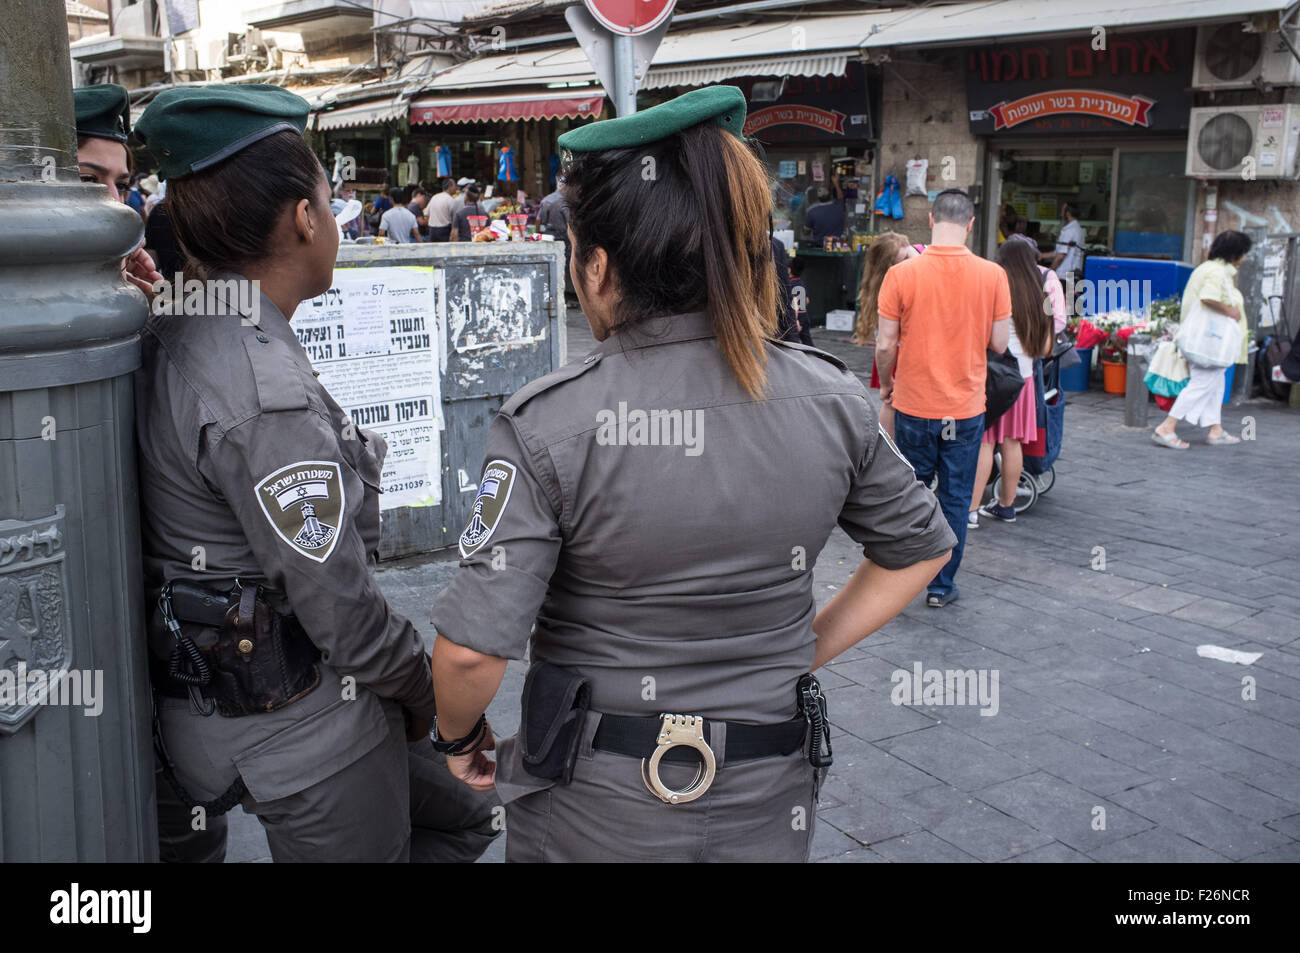 13th september 2015 border policewomen keep a watchful eye securing an entrance to jerusalems shuk machane yehuda market as last minute shoppers prepare